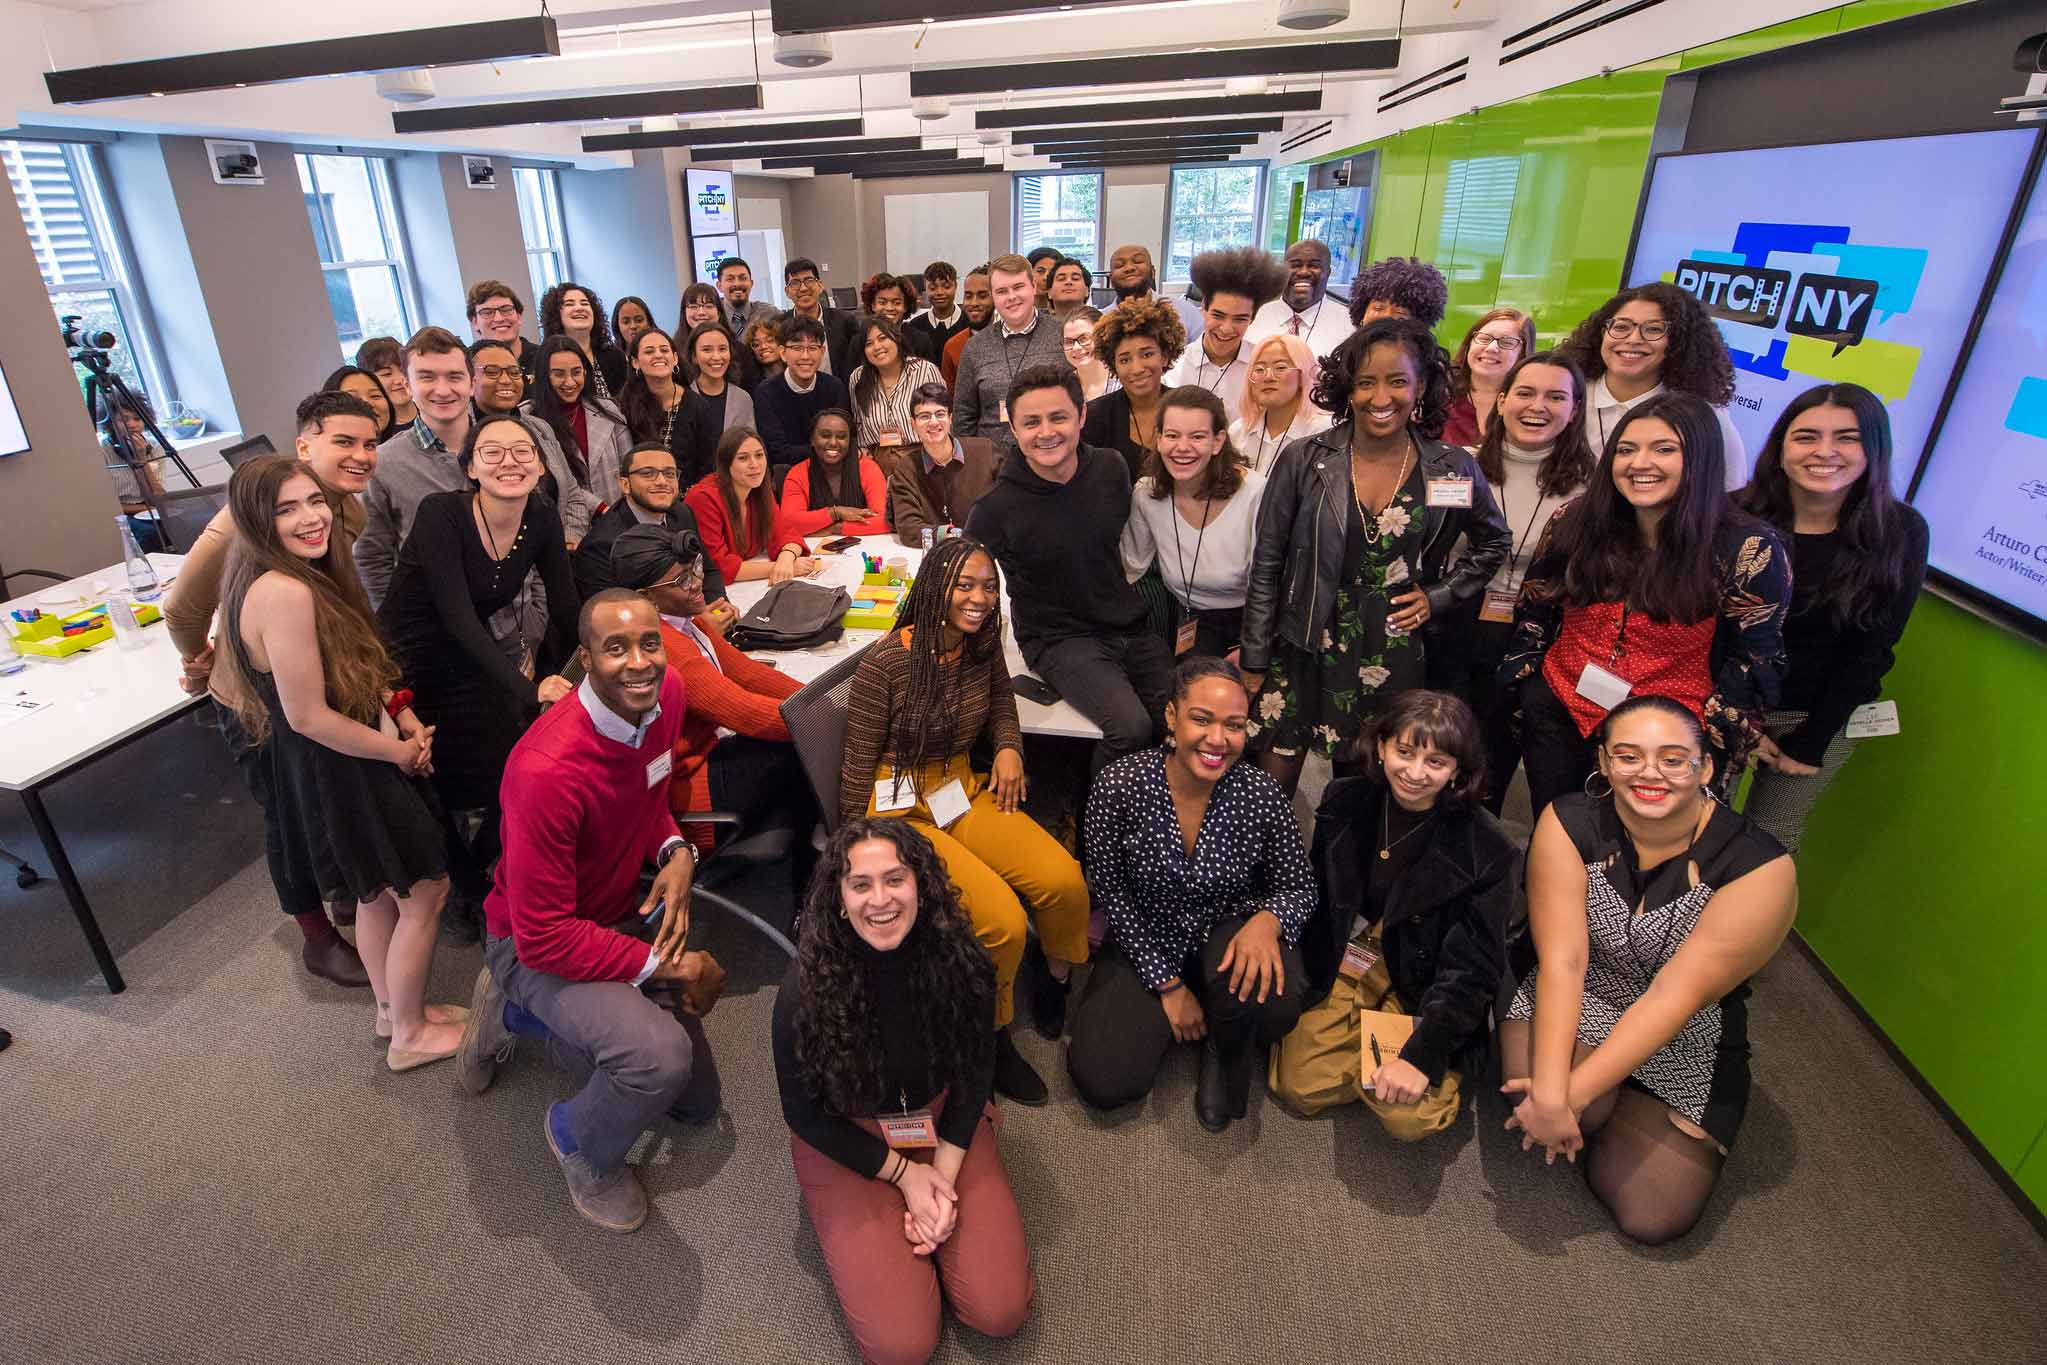 Participants and entertainment experts gather together at PITCHNY2019